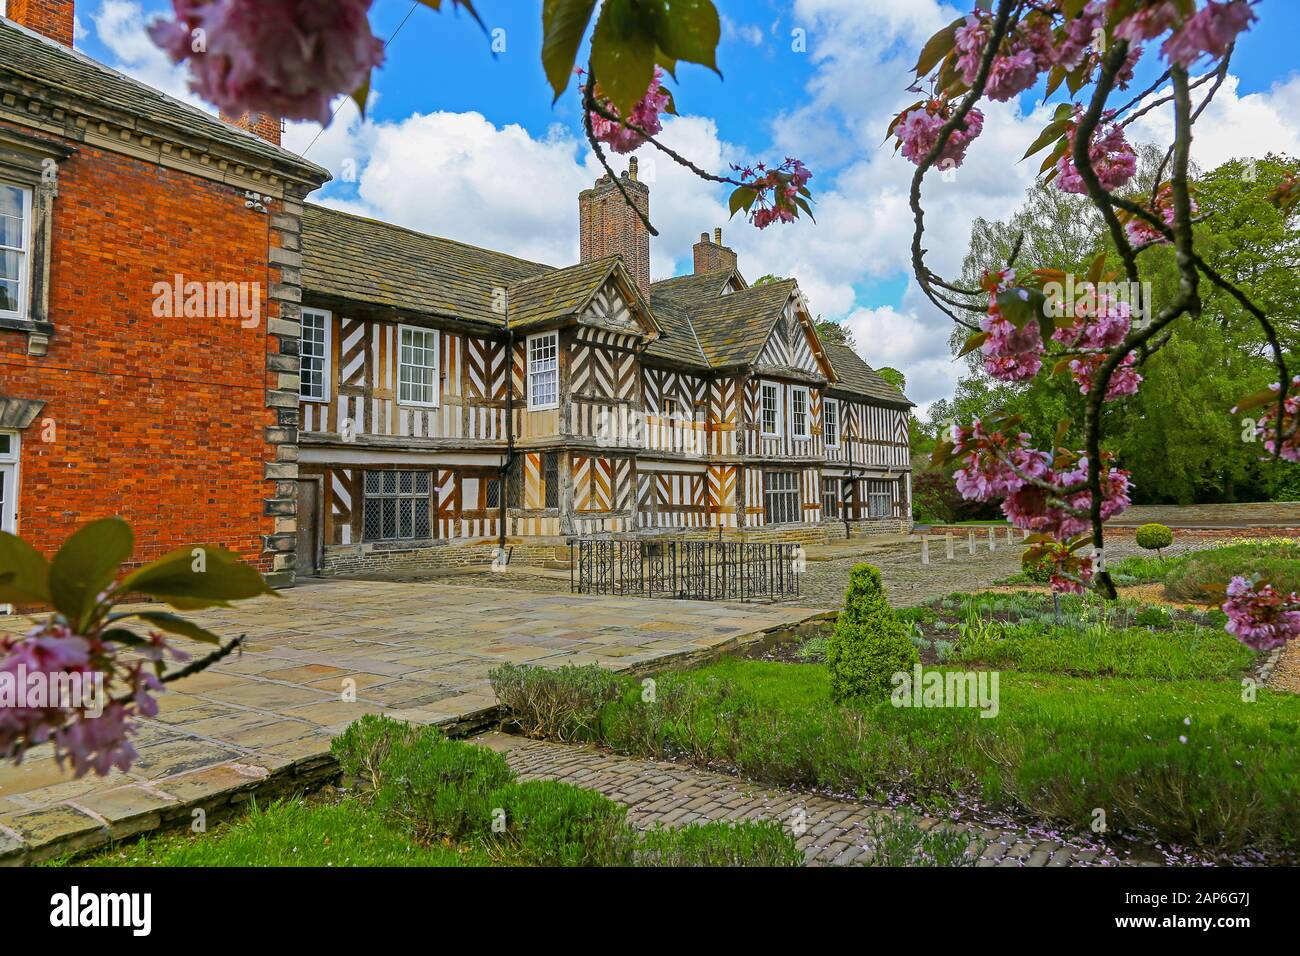 adlington-hall-seen-through-spring-cherry-blossom-at-a-country-house-near-adlington-cheshire-england-uk-2AP6G7J.jpg